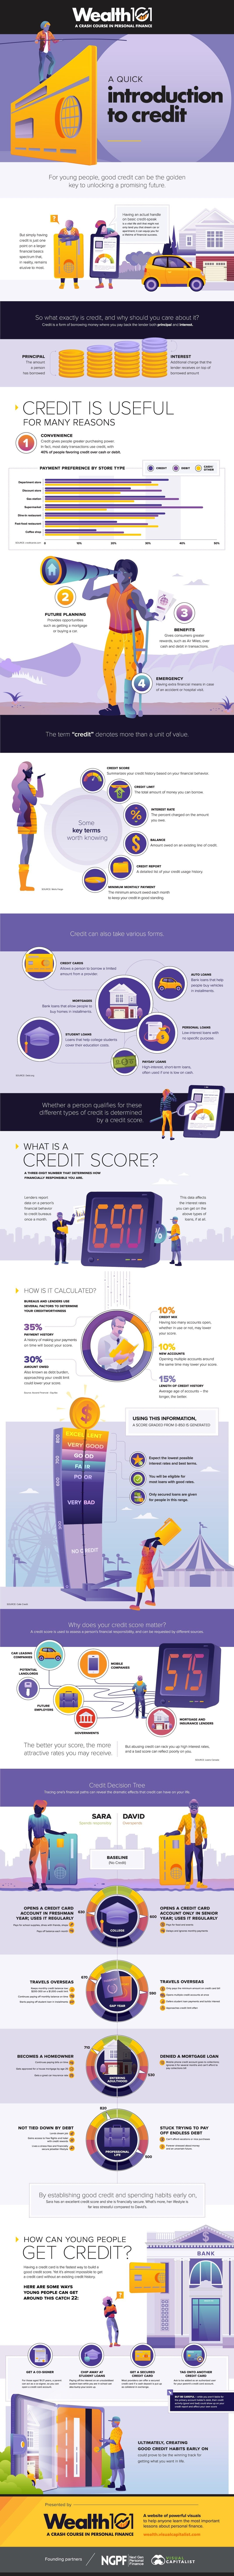 What Young People Need to Know About Credit #infographic